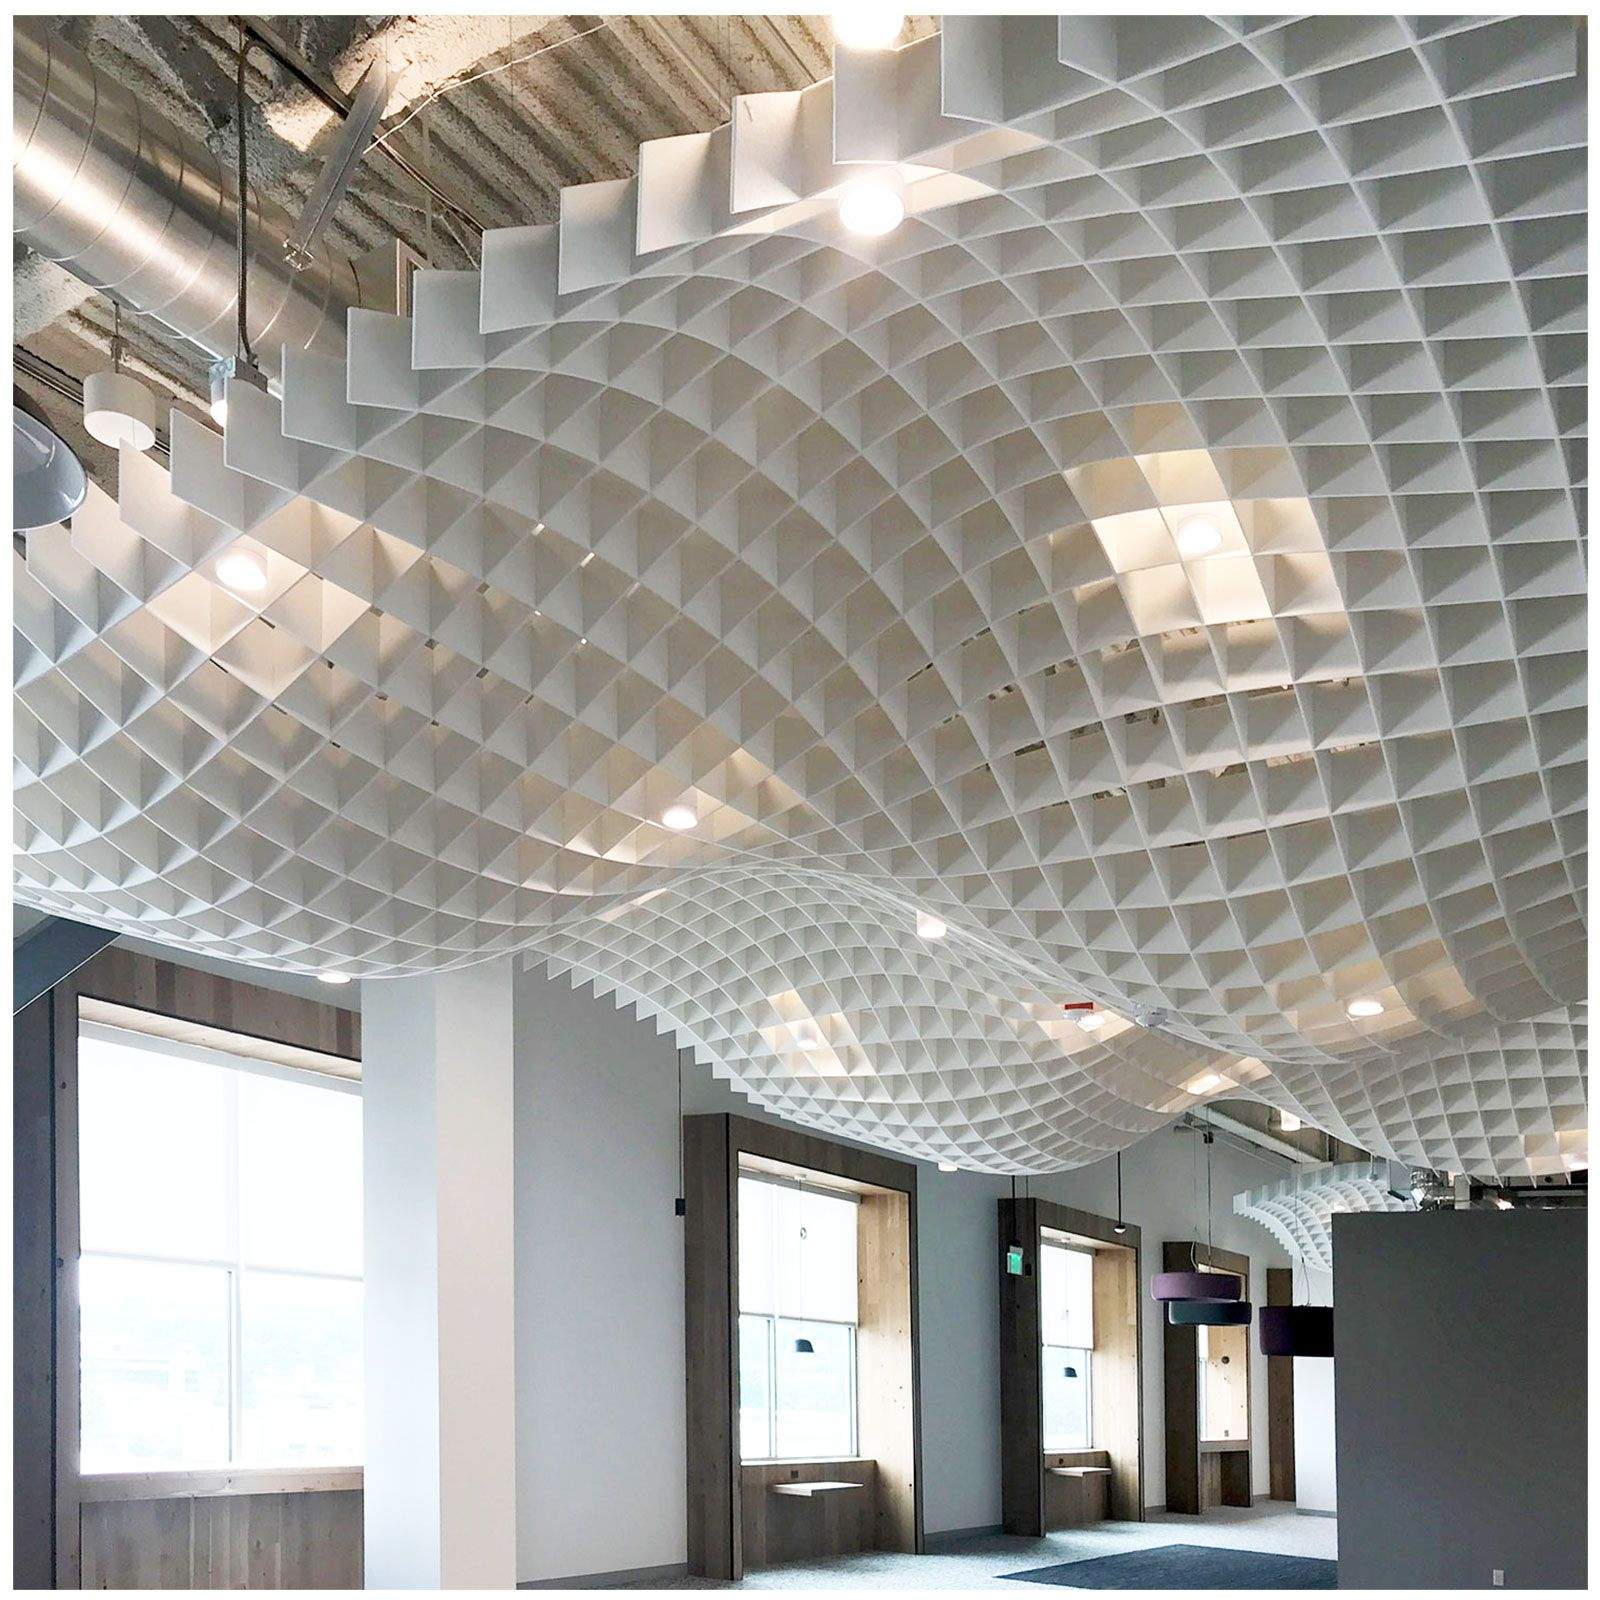 Acoustical Ceiling Grid Canopies Trader Boys Office Furniture Acoustical Ceiling Acoustic Ceiling Panels Ceiling Grid